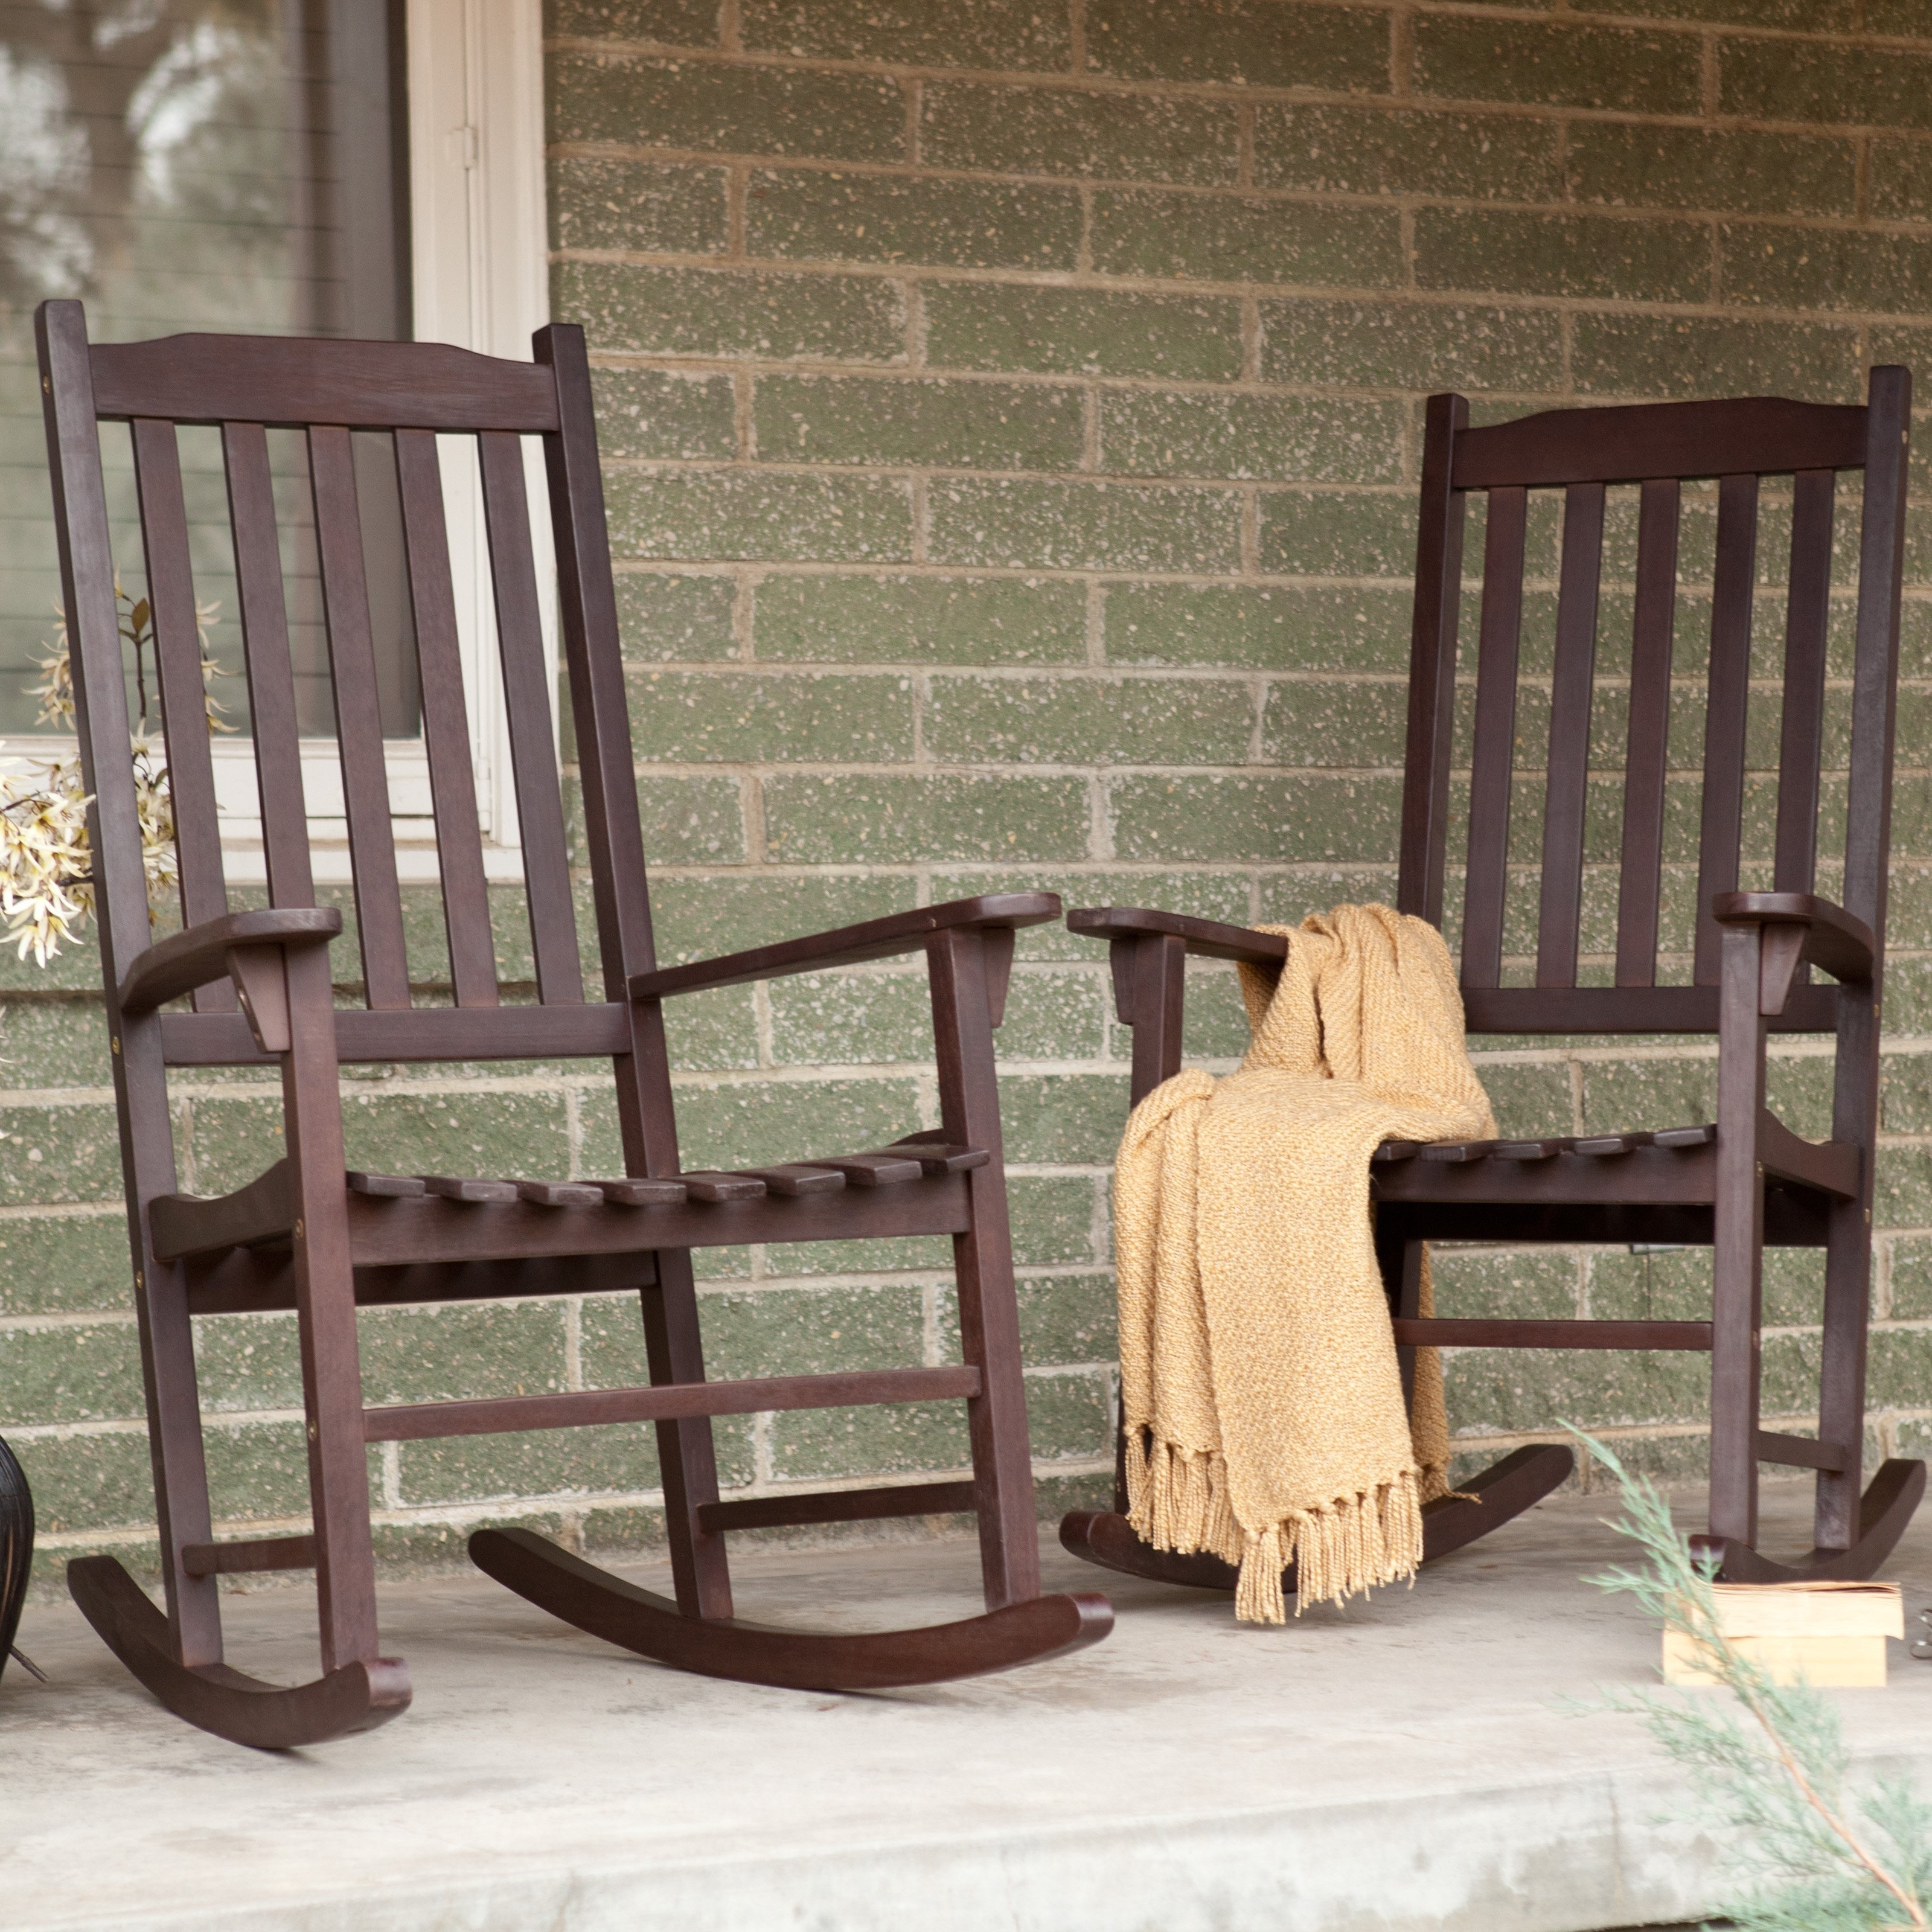 Outdoor Rocking Chair : Time To Relax – Goodworksfurniture Intended For Fashionable Oversized Patio Rocking Chairs (View 10 of 20)